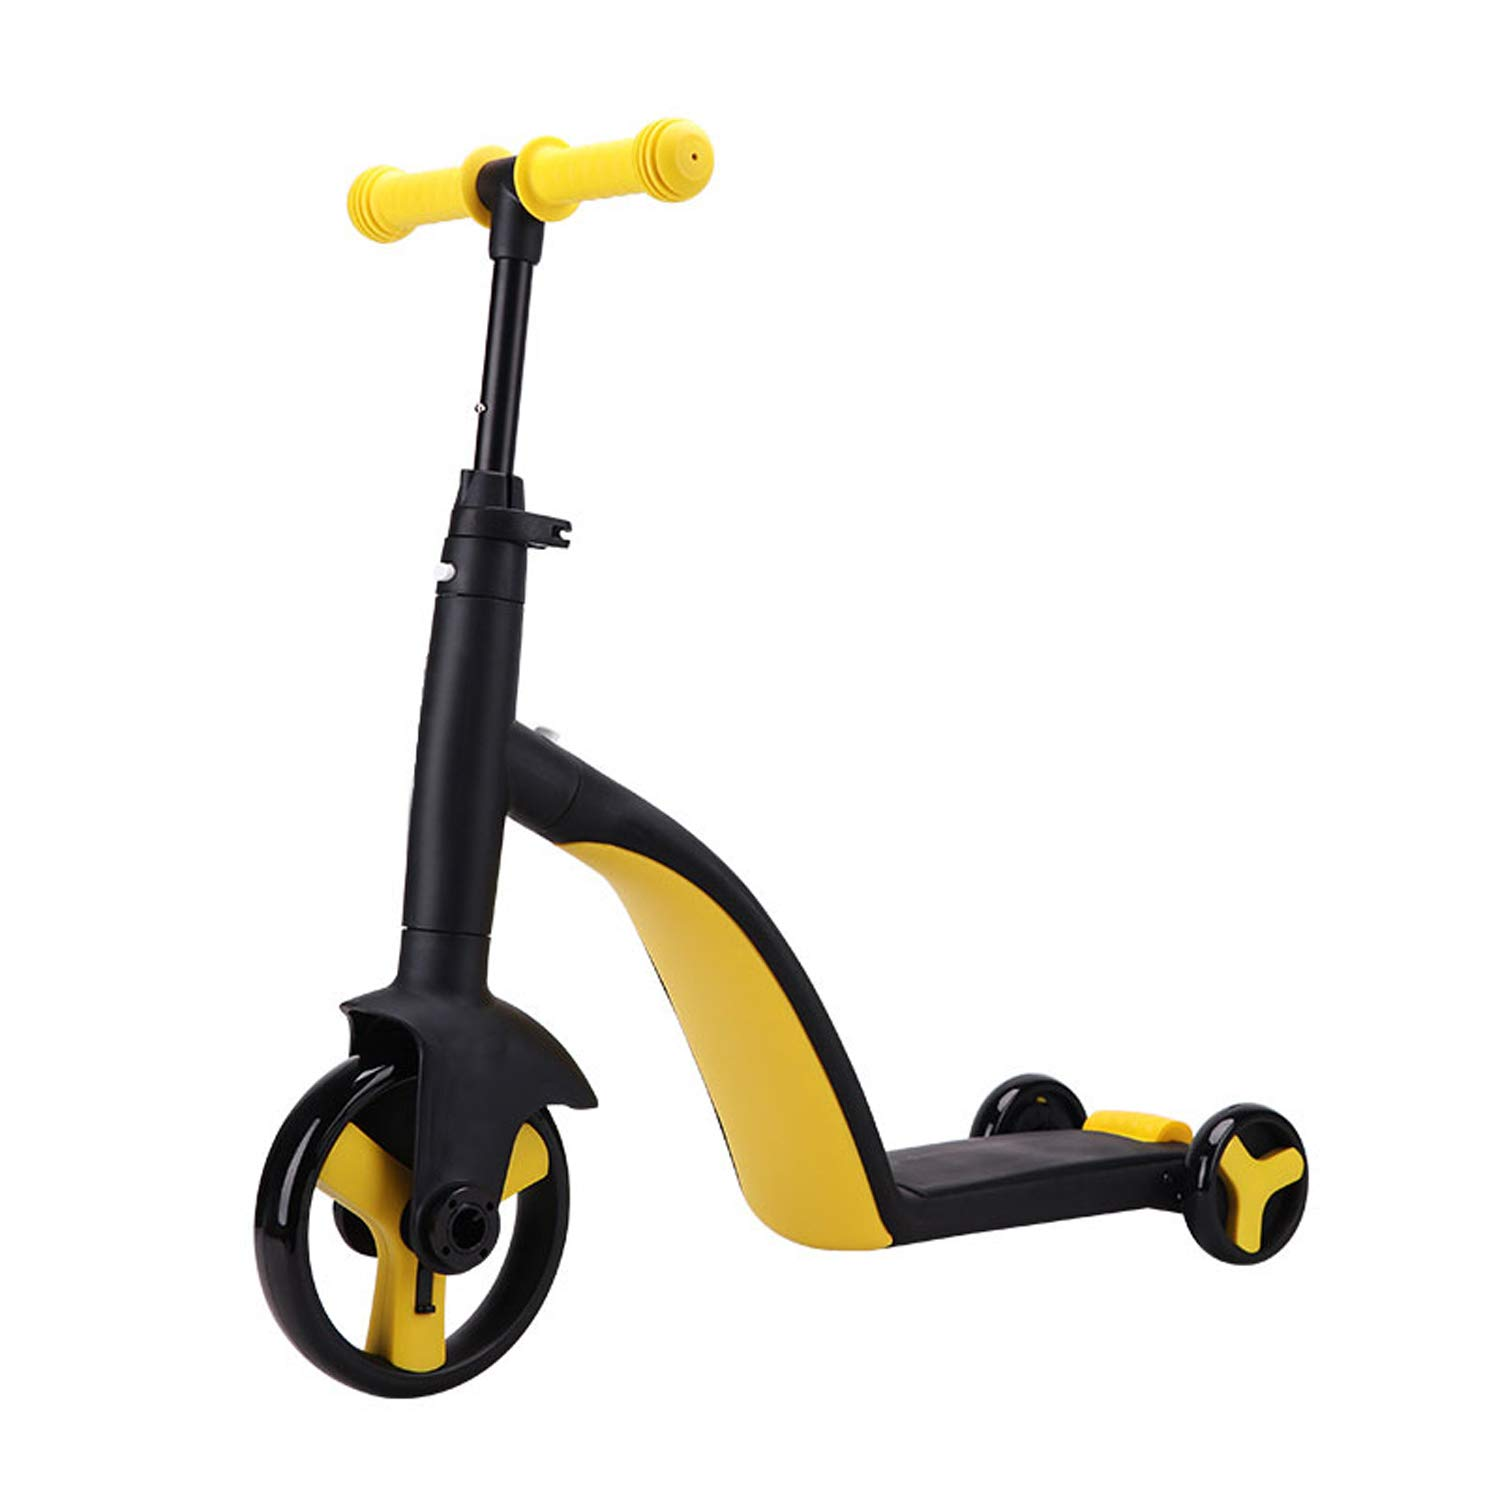 Piarrow 3-in-1 Convertible Tricycle, Balance Bike, Kick Scooter for Kids and Toddler at Age of 2, 3, 4, 5 Year Old | Trike Turns Into 3 Wheel Scooter for Boys & Girls - Yellow by Piarrow